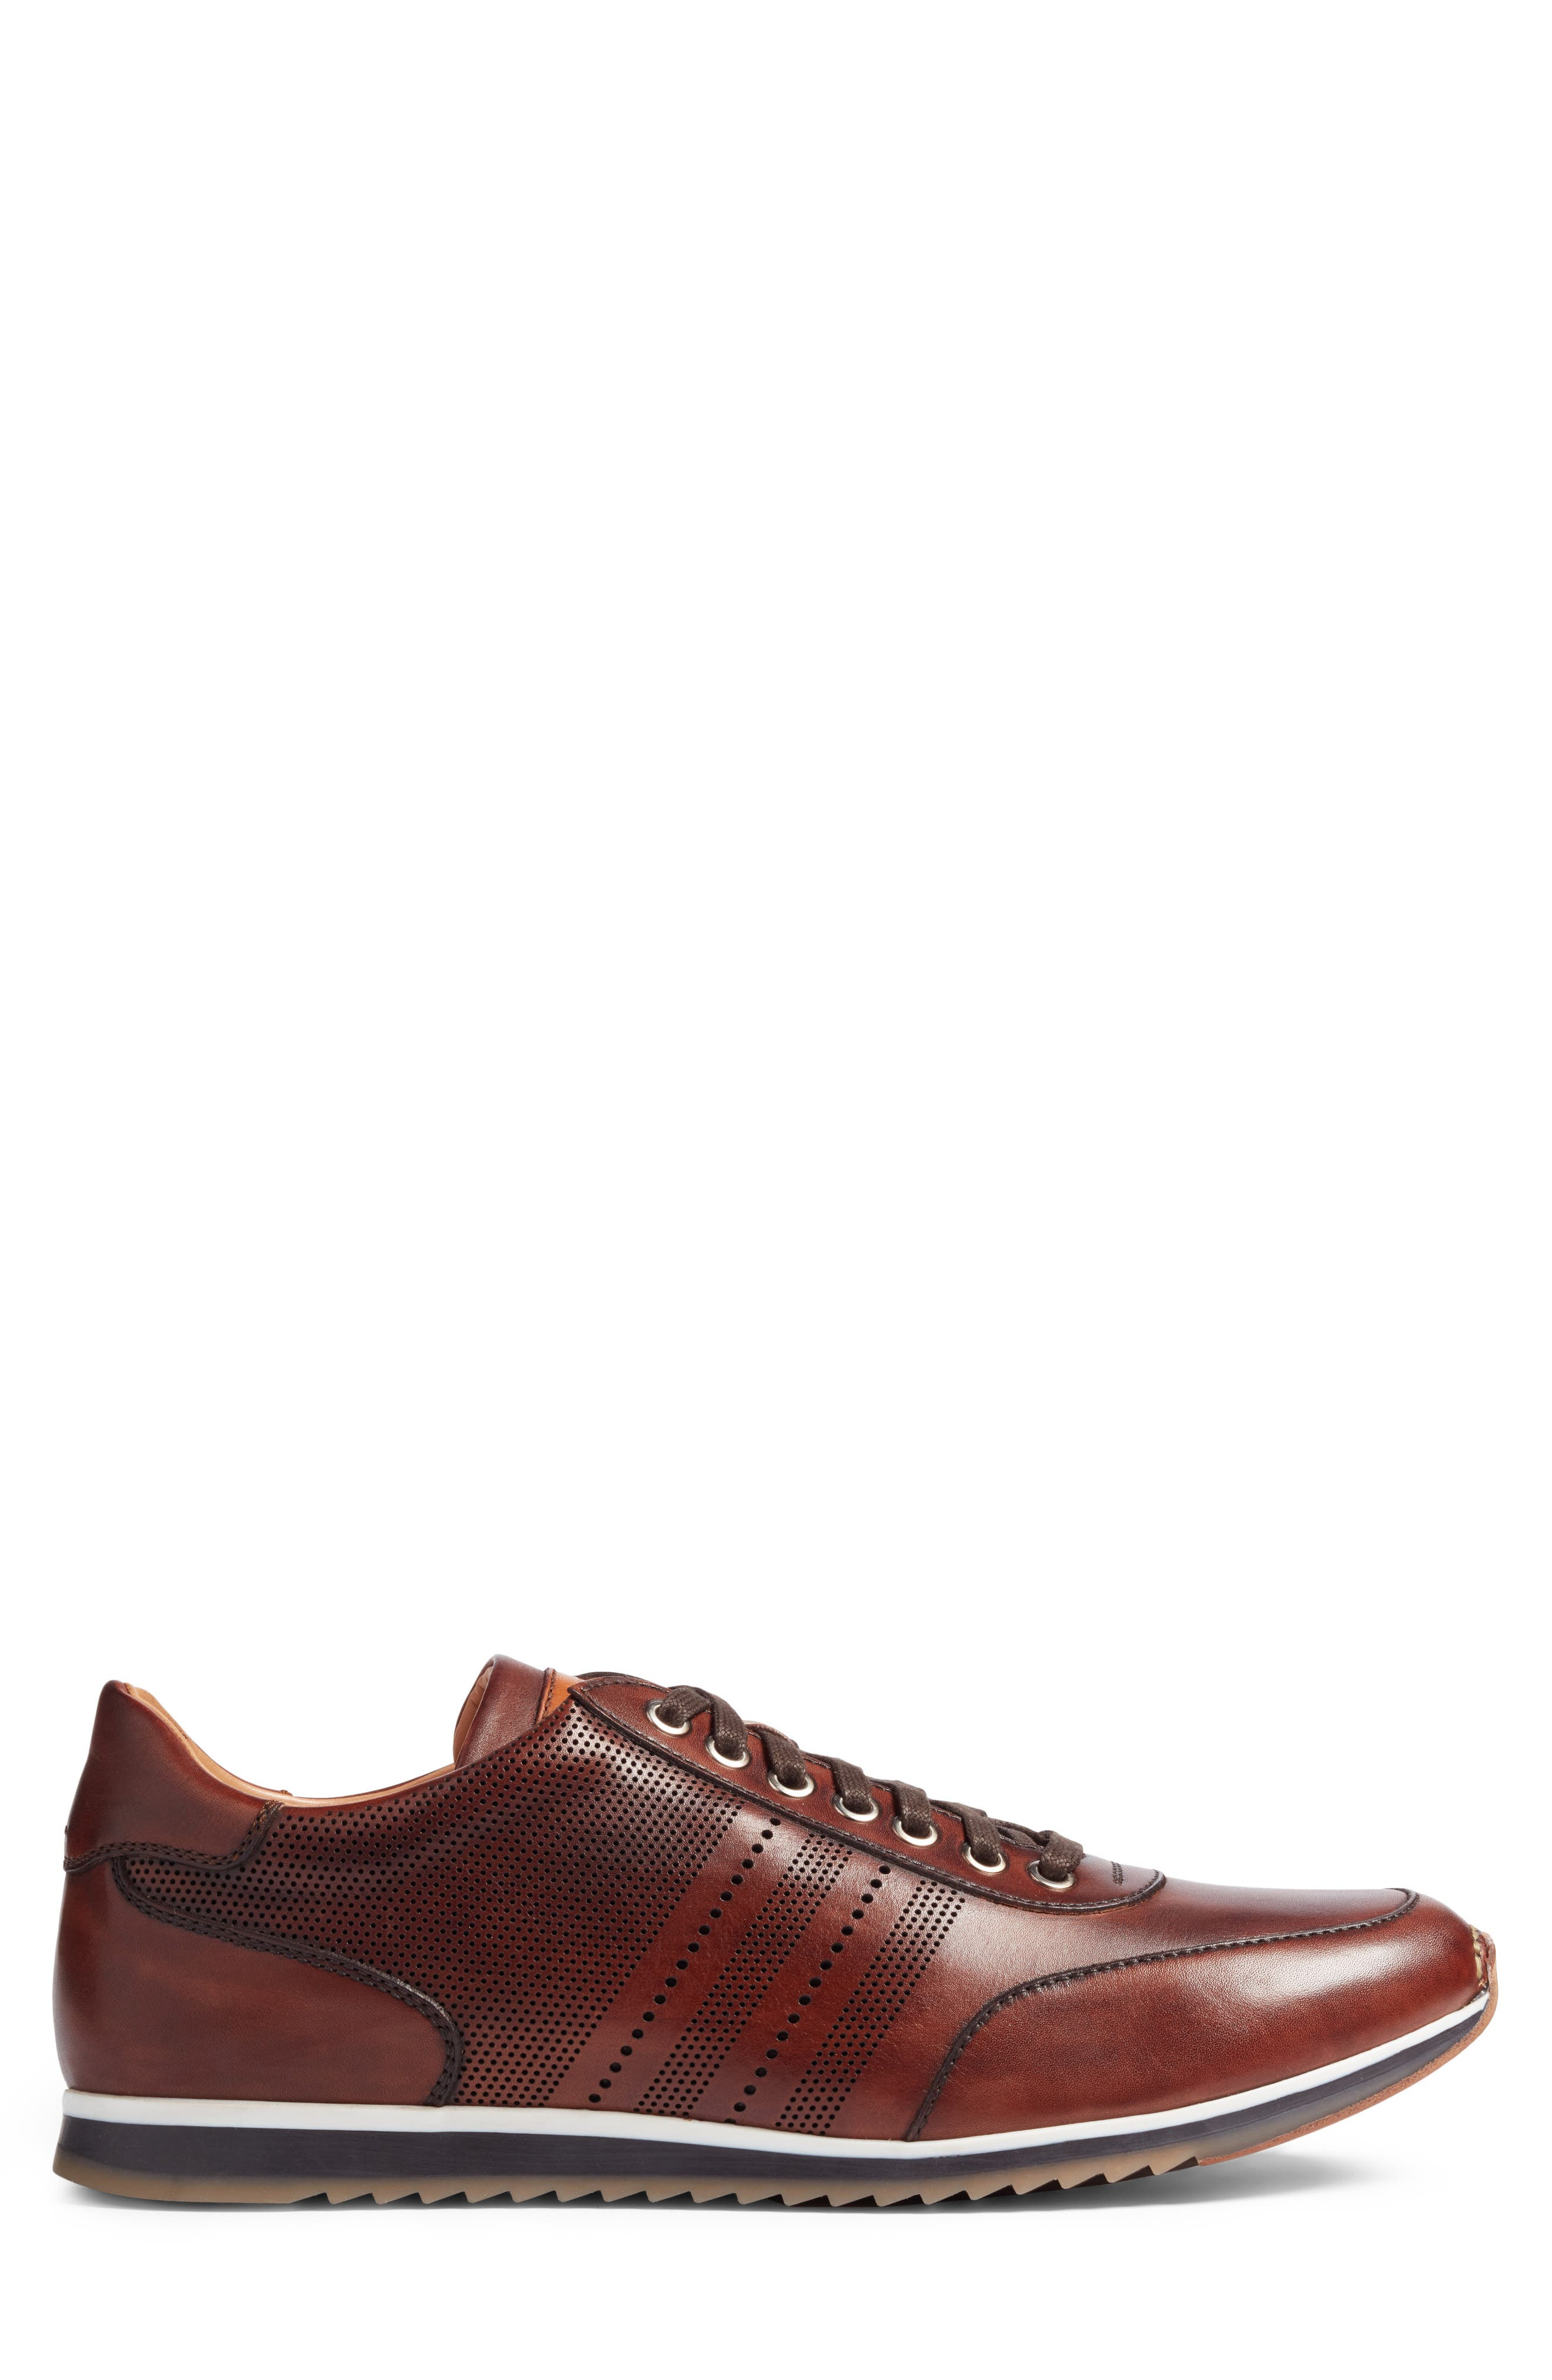 Alternate Image 3  - Magnanni Merino Sneaker (Men)